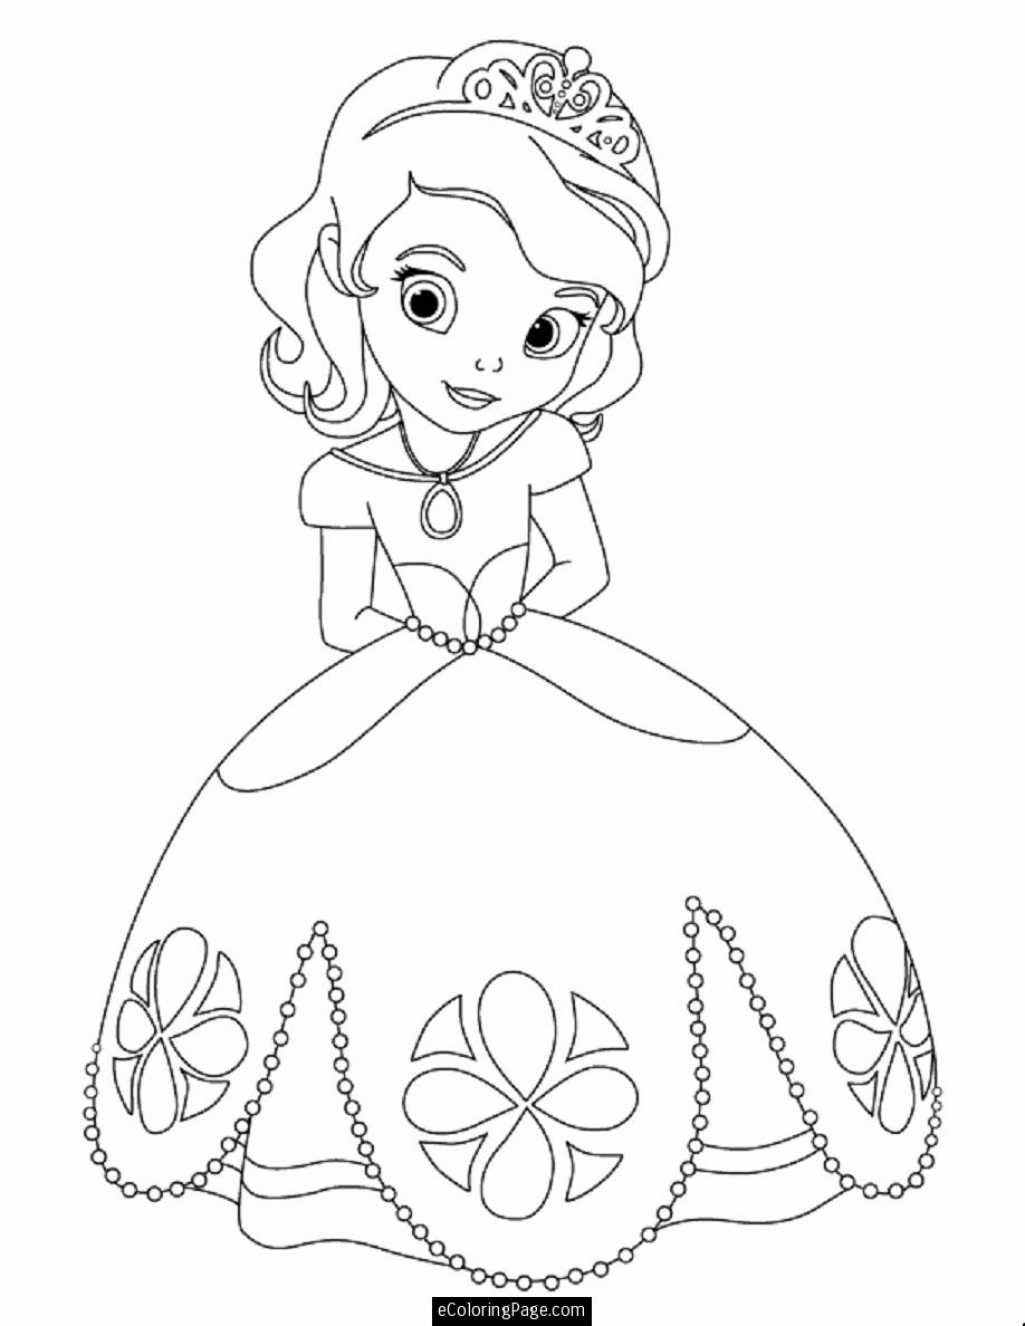 1025x1326 Expert Easy Disney Princess Coloring Pages 12 11 0 Beautiful